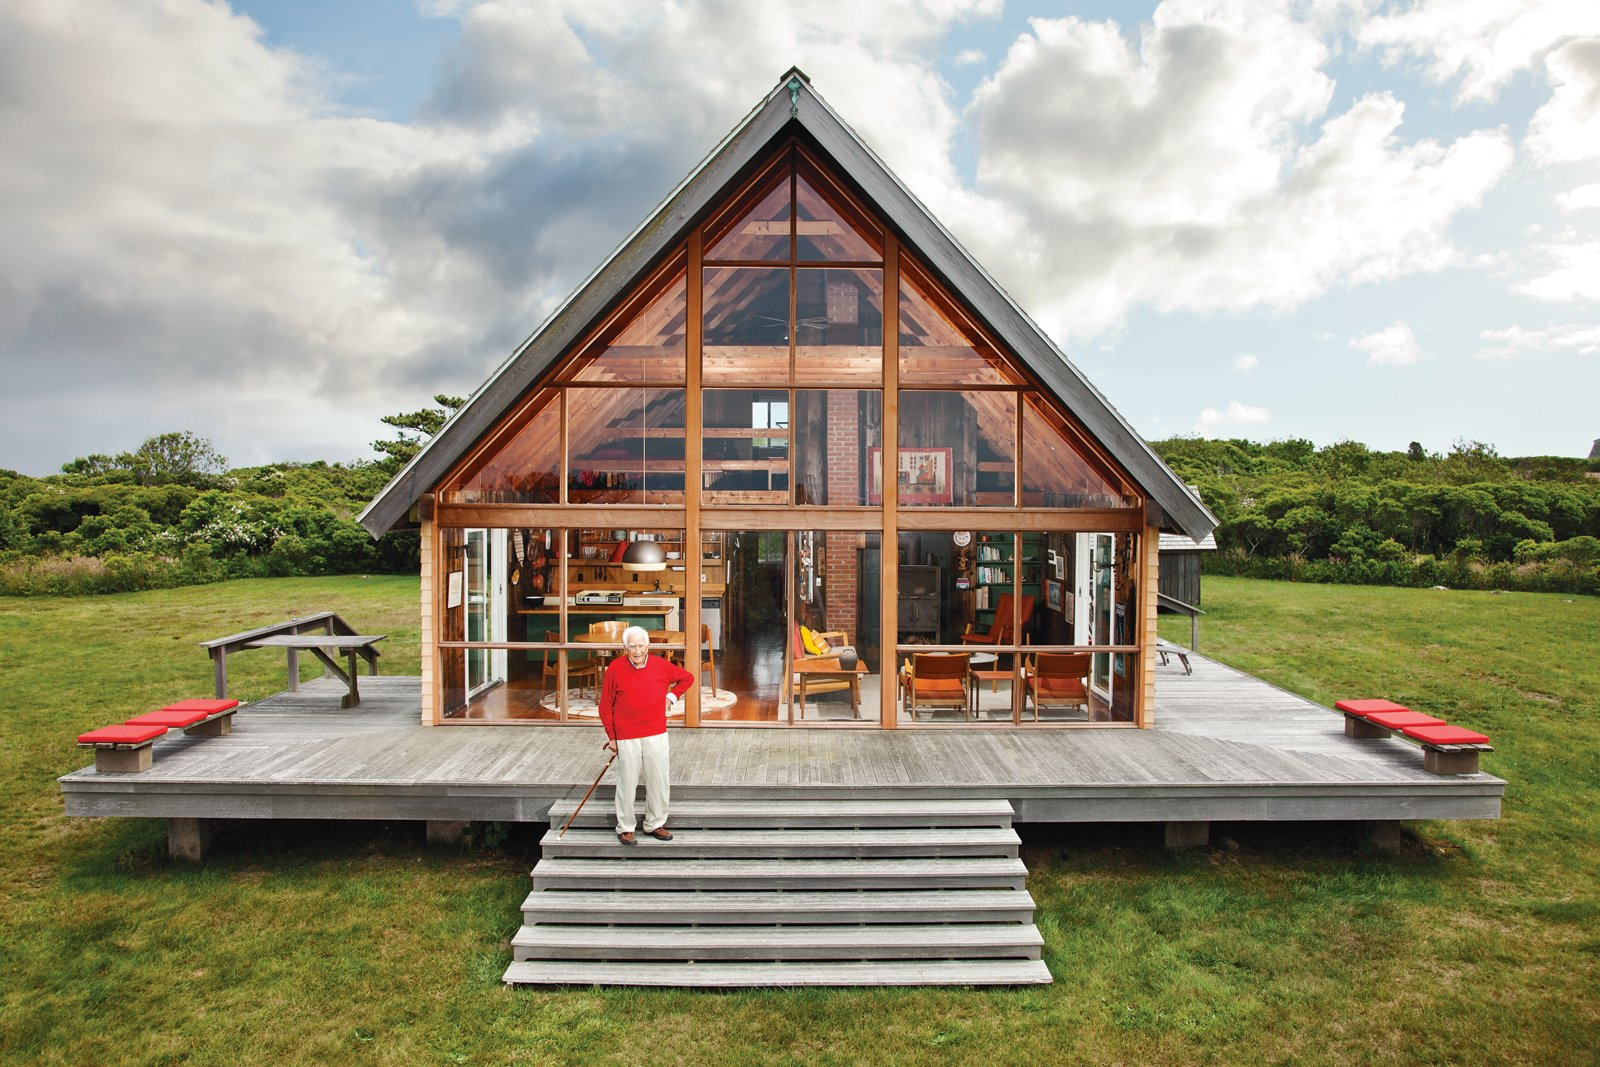 Articles about jens risoms block island family retreat on Dwell.com